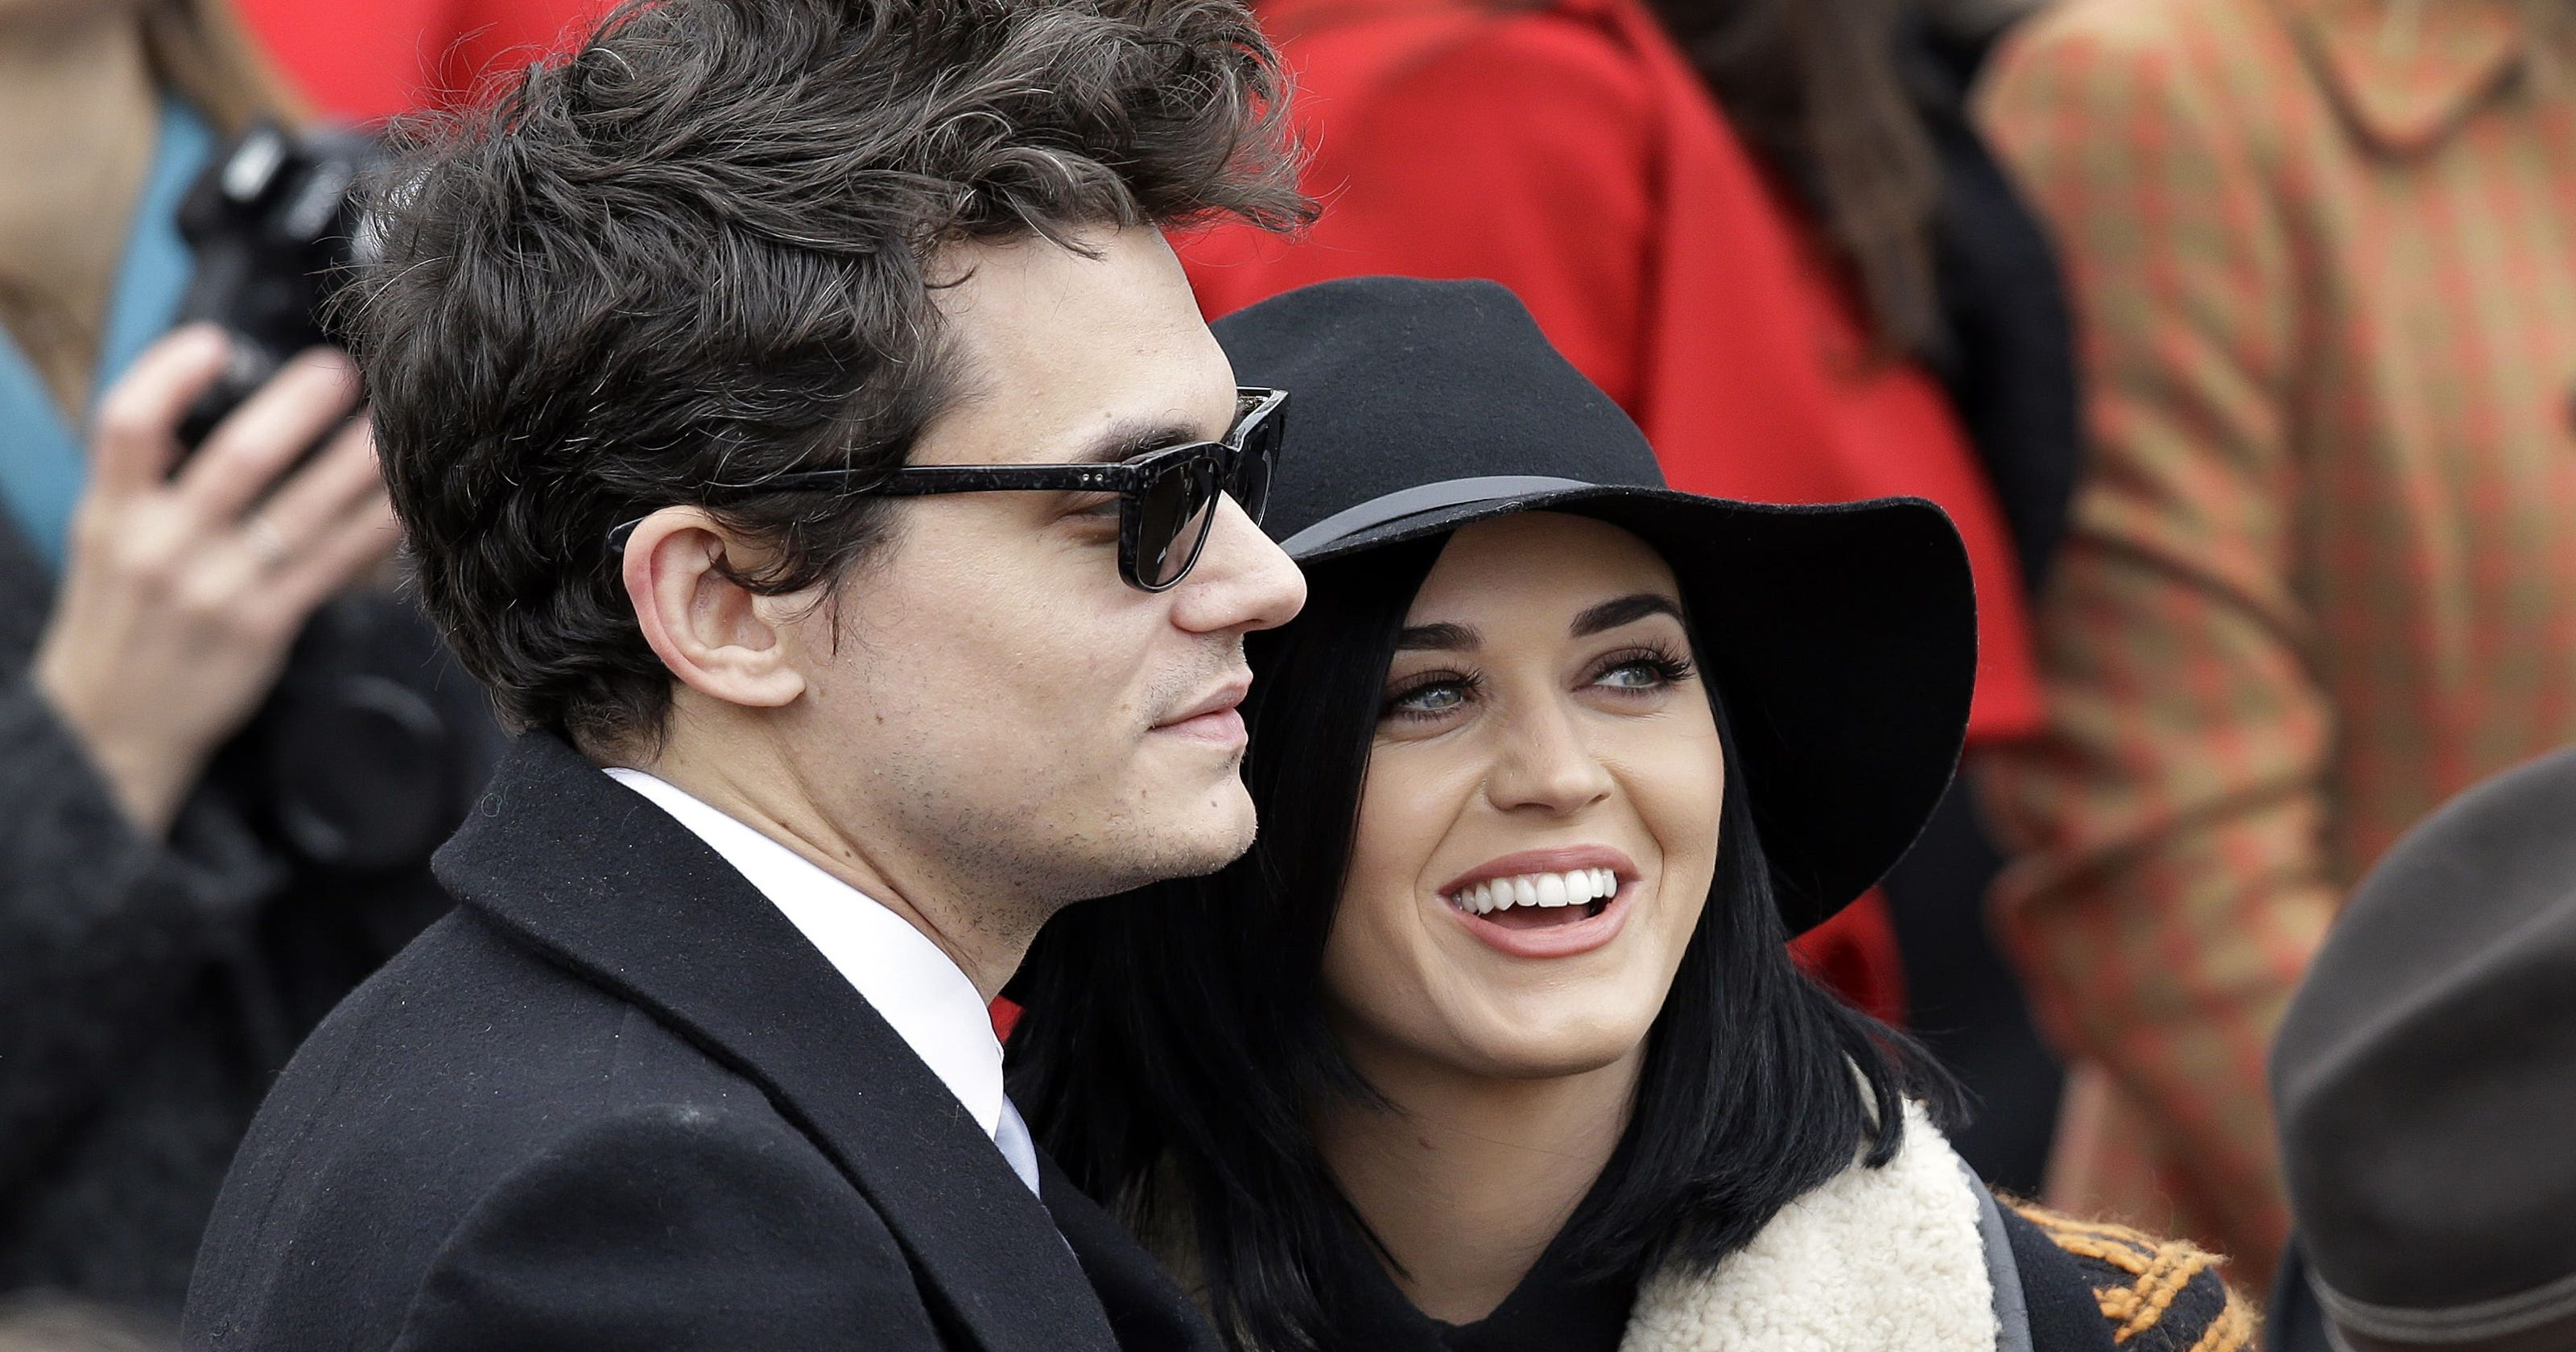 John mayer throws back katy perrys best ex lover compliment m4hsunfo